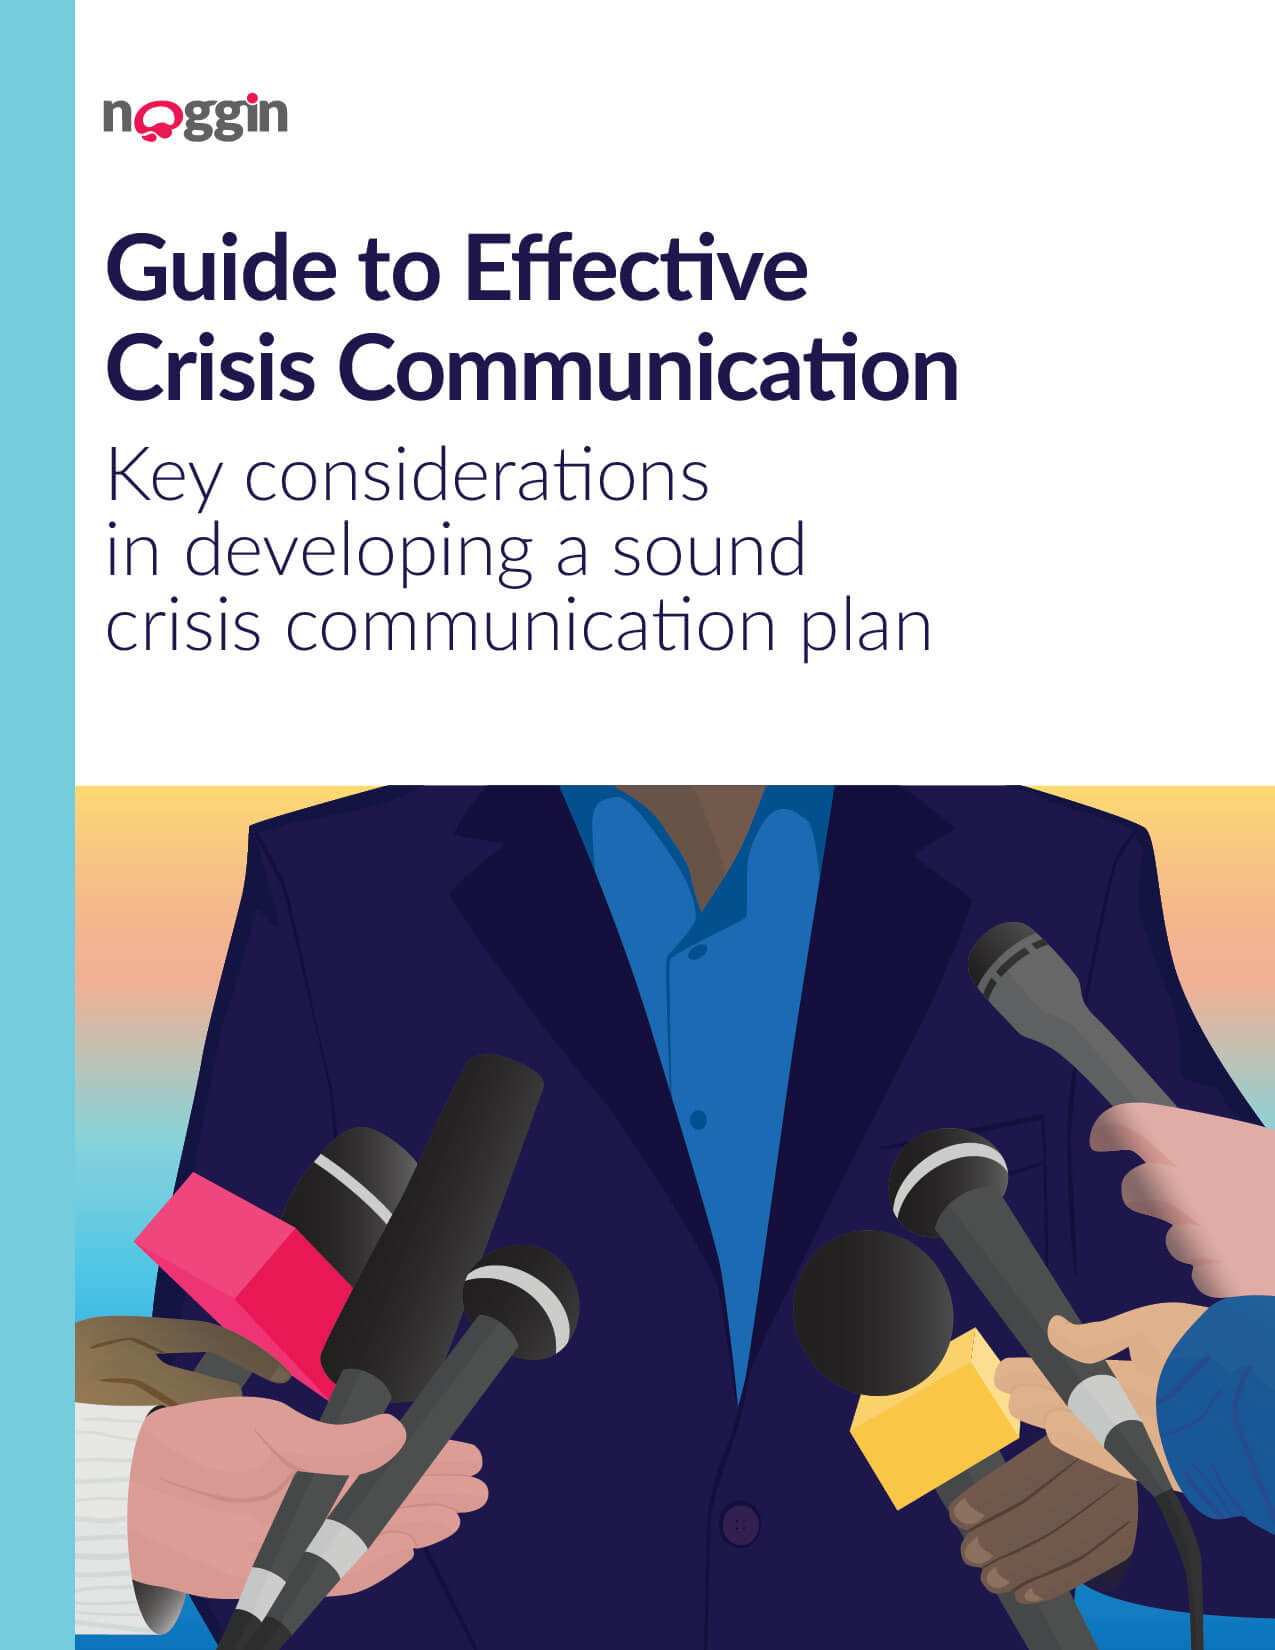 Noggin white paper guide on Effective Crisis Communication. This was created to drive marketing qualified leads for the Noggin Crisis product from the website. Page 1 of 9